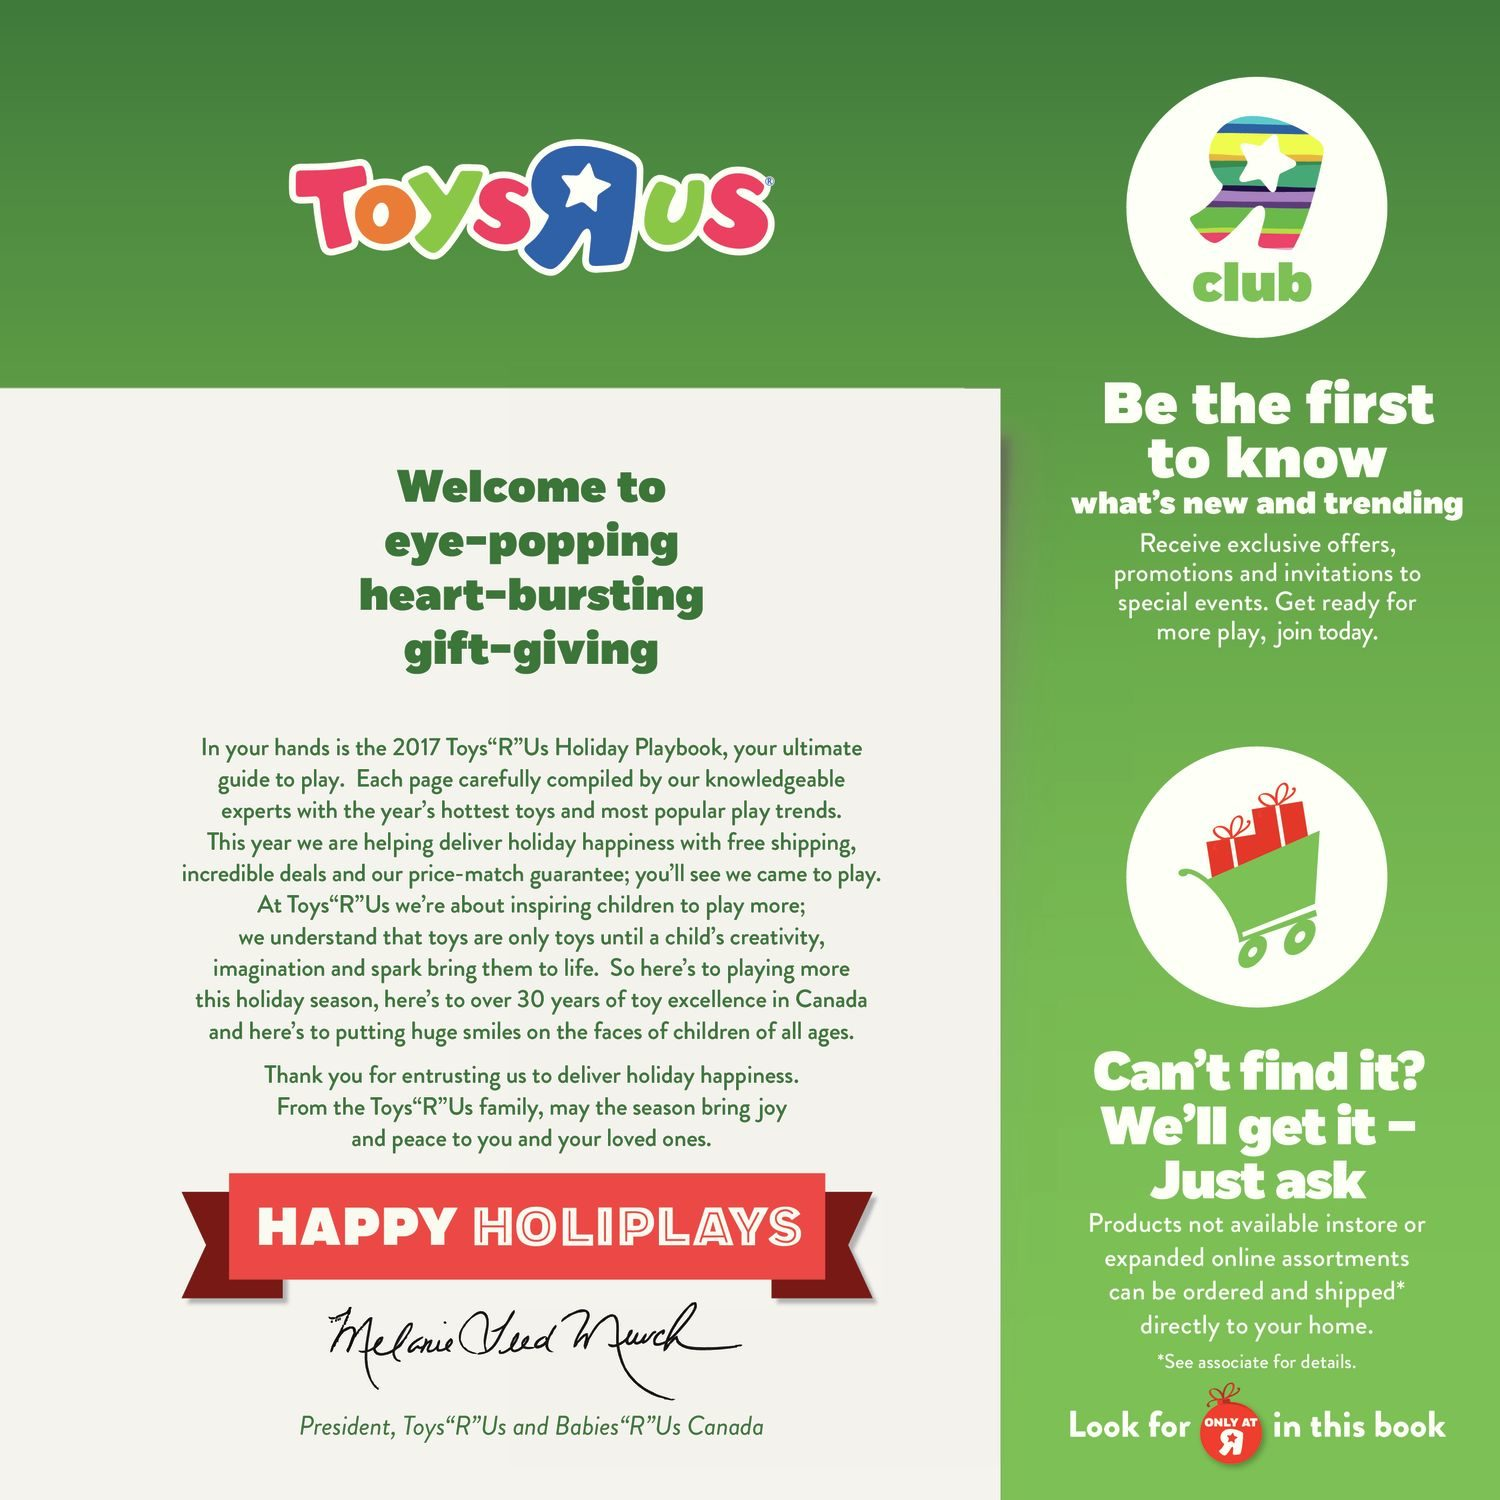 Toys R Us Weekly Flyer - 2017 Playbook - Nov 3 – 16 - RedFlagDeals.com